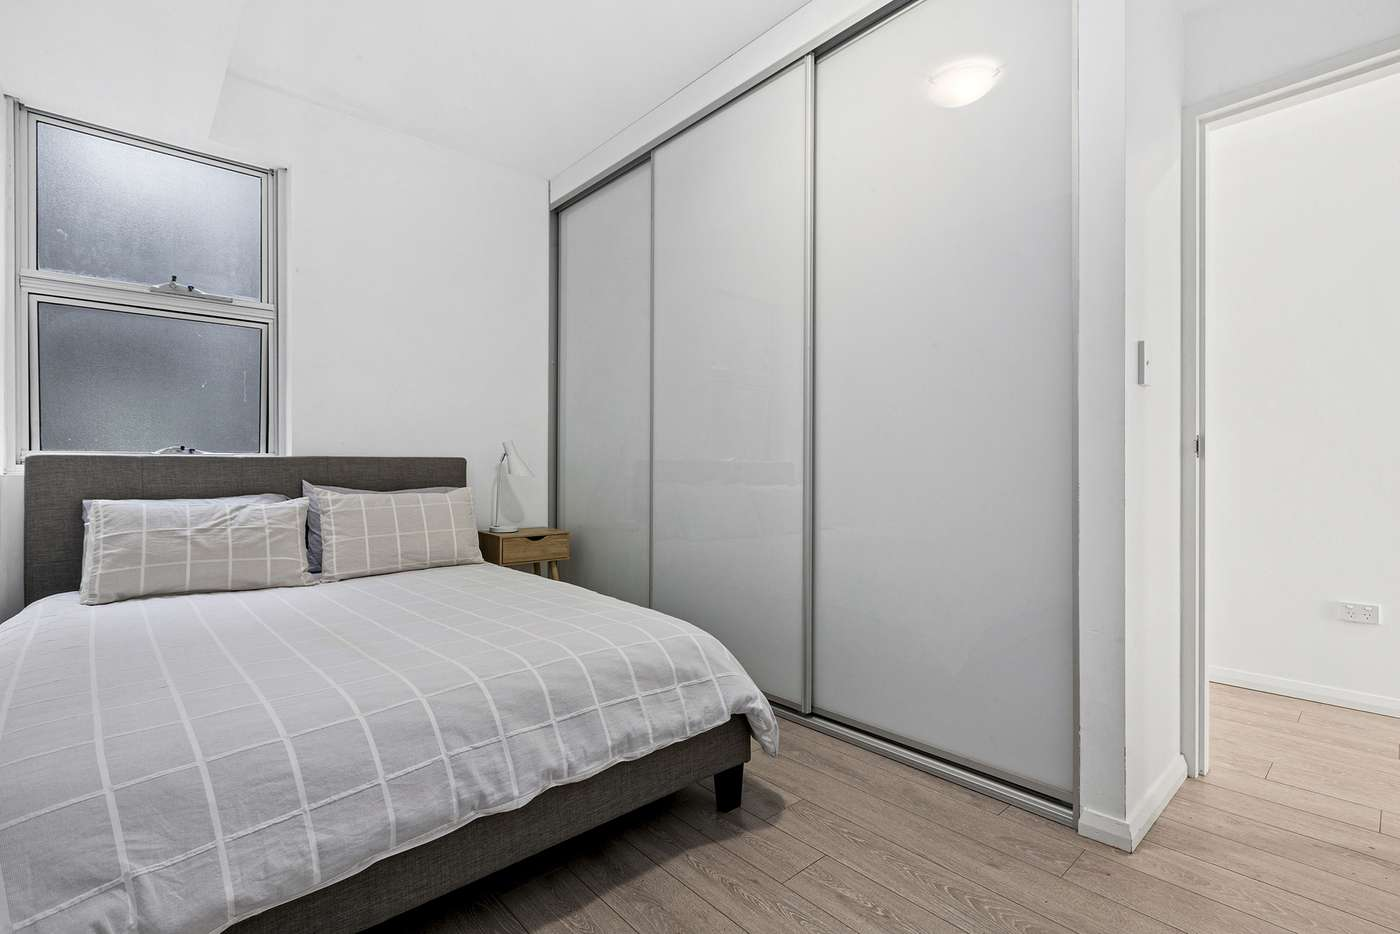 Sixth view of Homely apartment listing, 9/190 Victoria Street, Potts Point NSW 2011